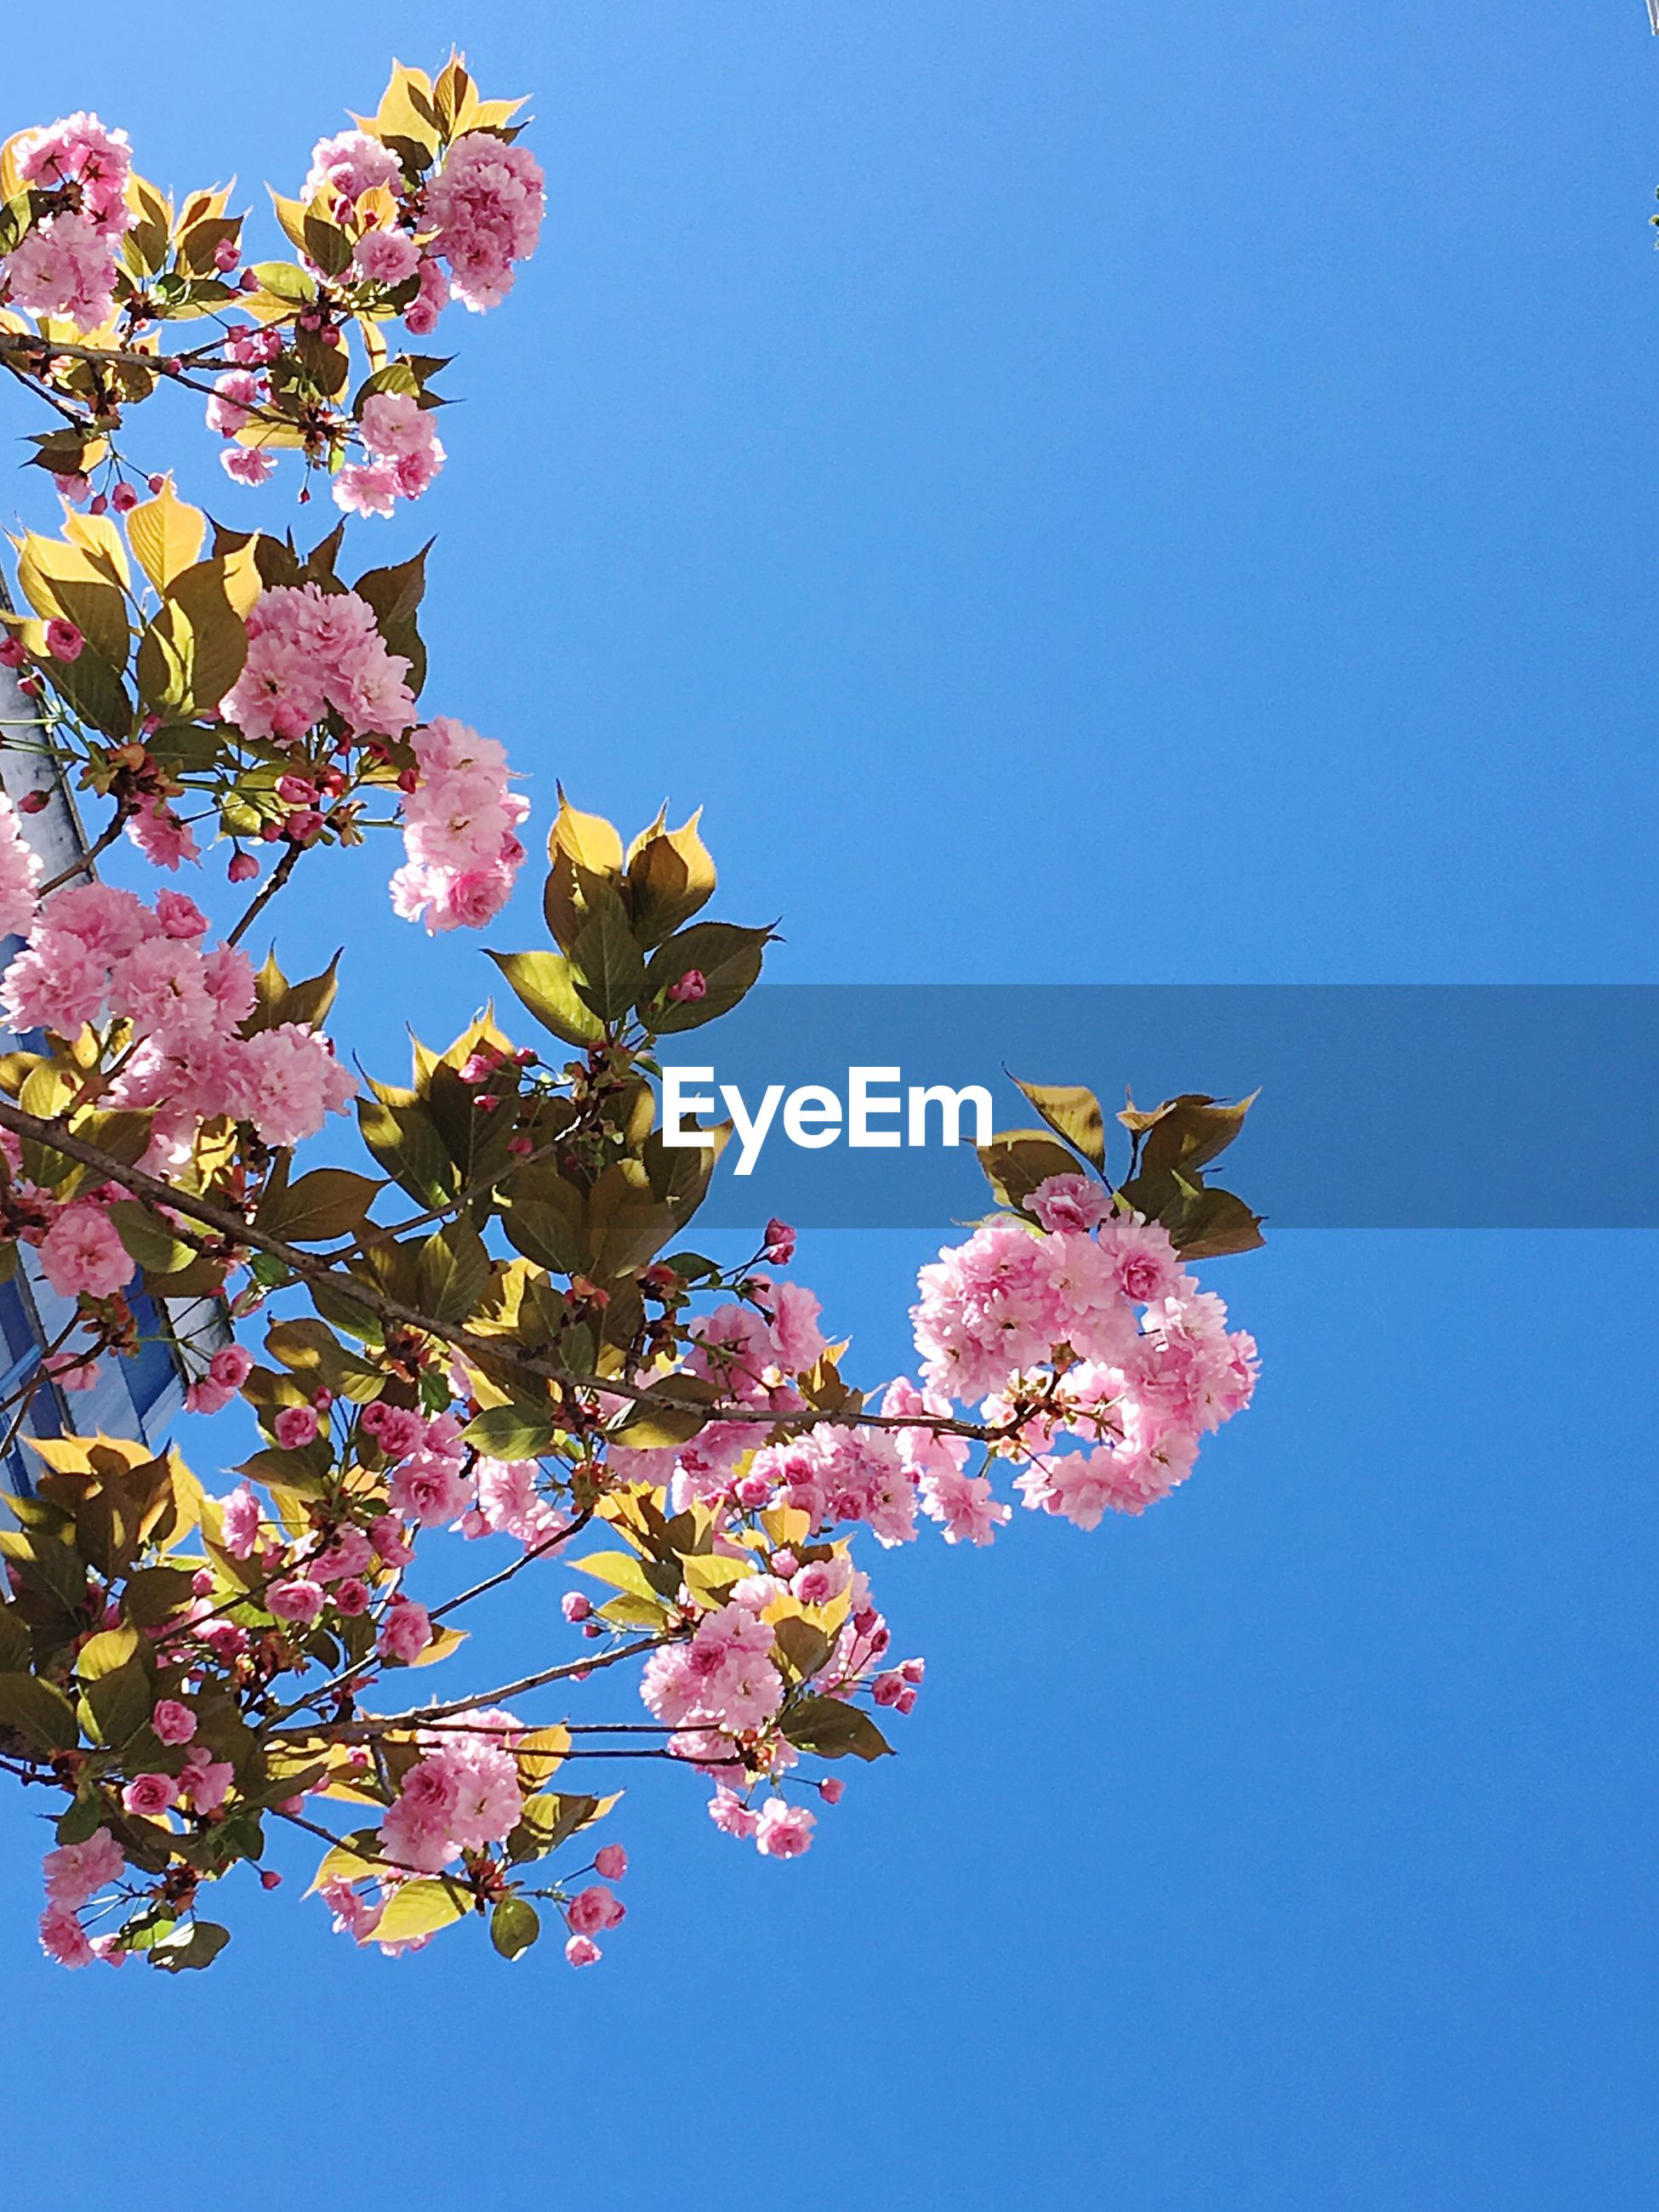 CLOSE-UP OF PINK FLOWERS AGAINST BLUE SKY